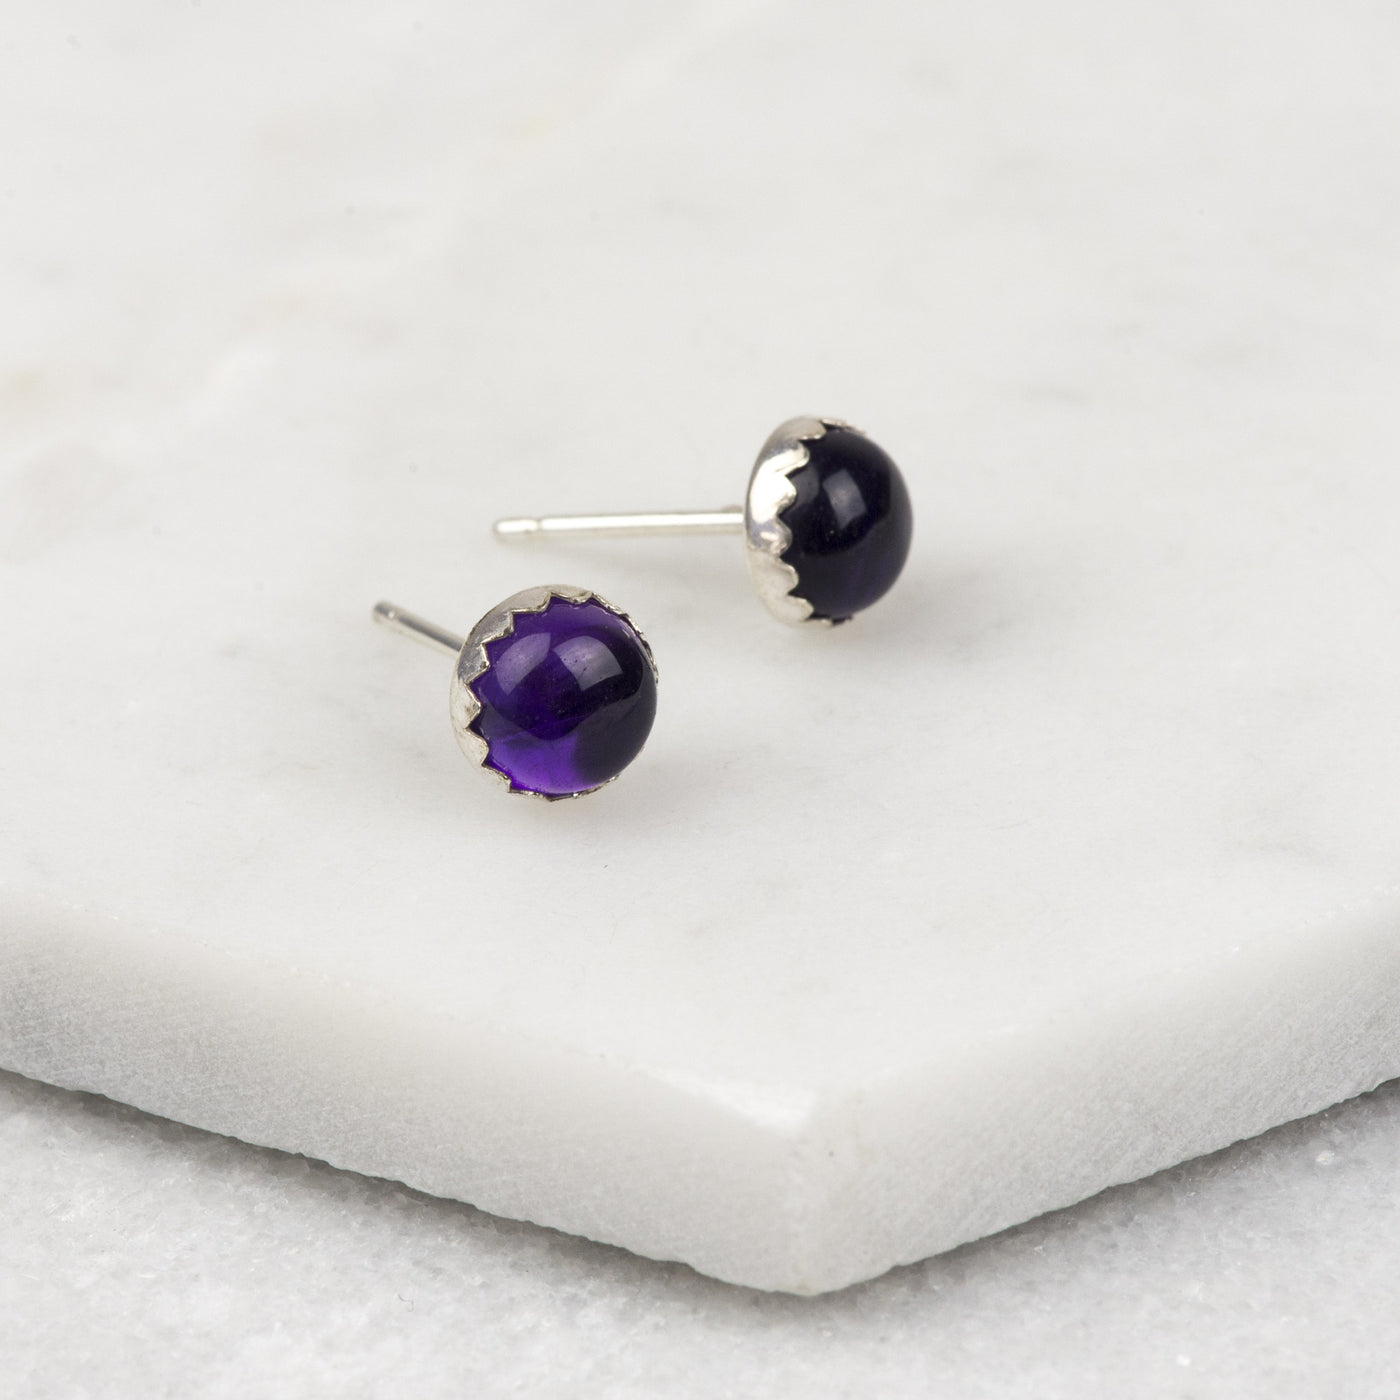 Amethyst - Handmade Sterling Silver Gemstone Earrings